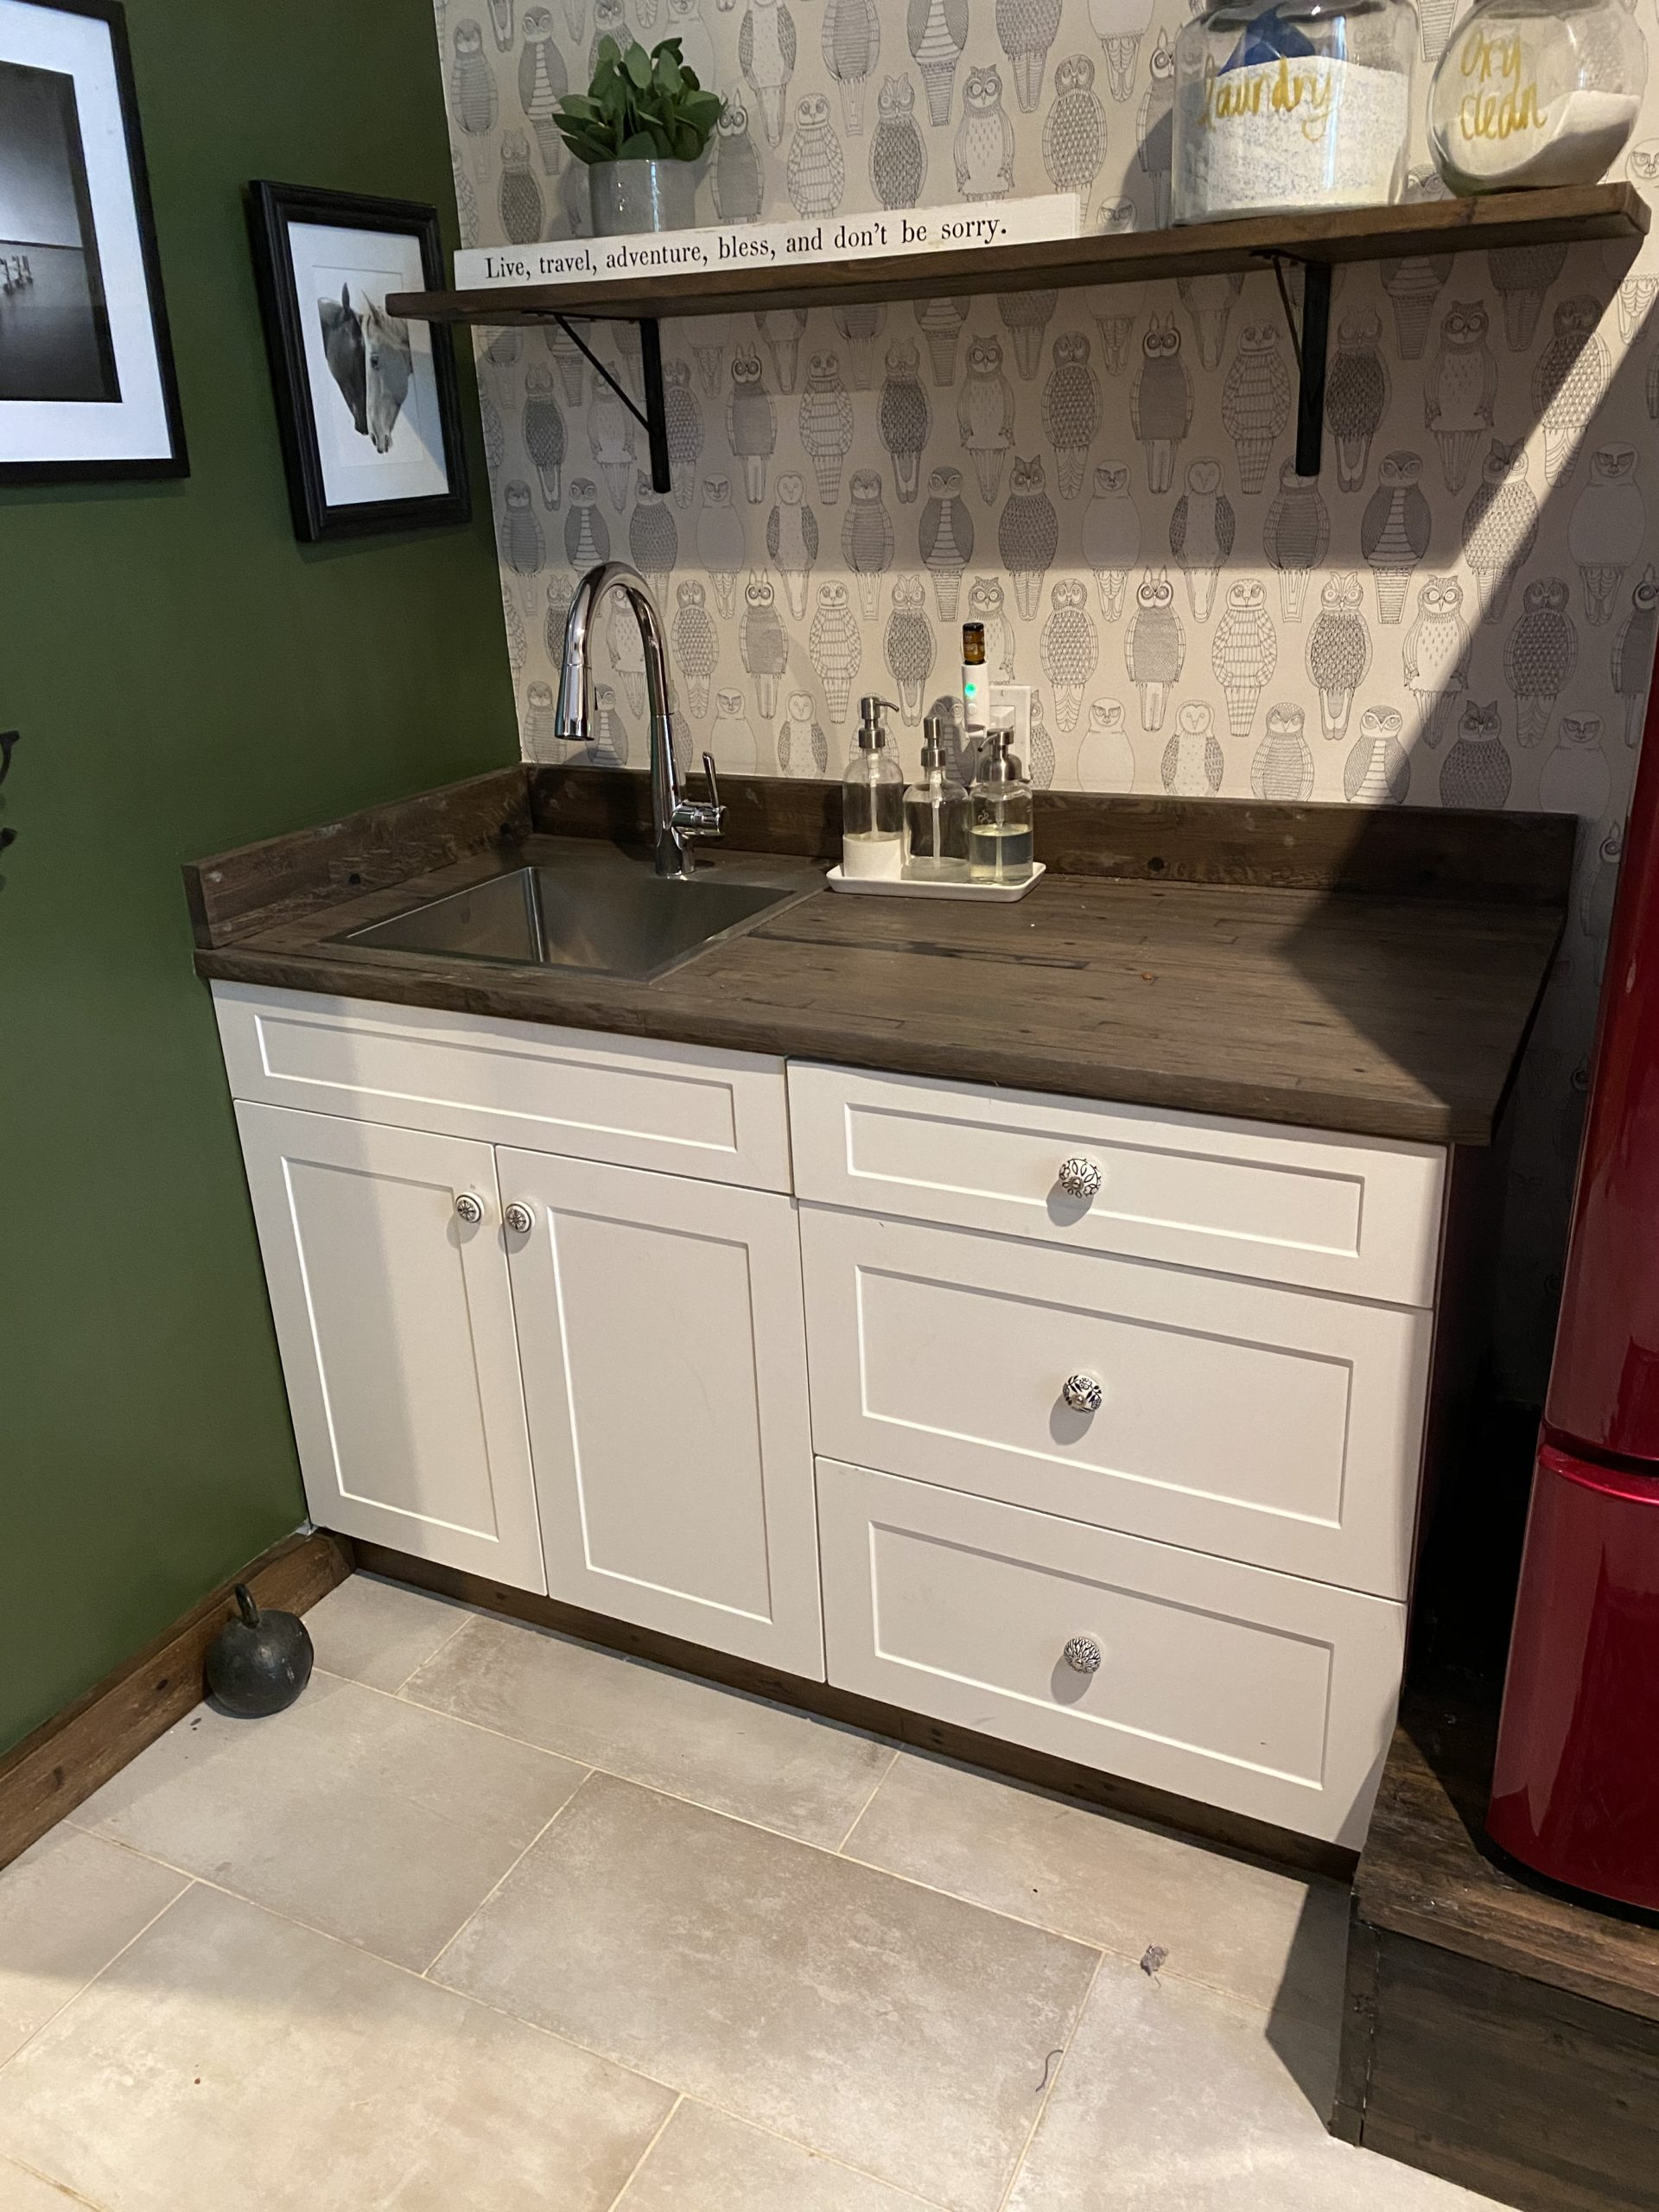 Laundry counter with sink